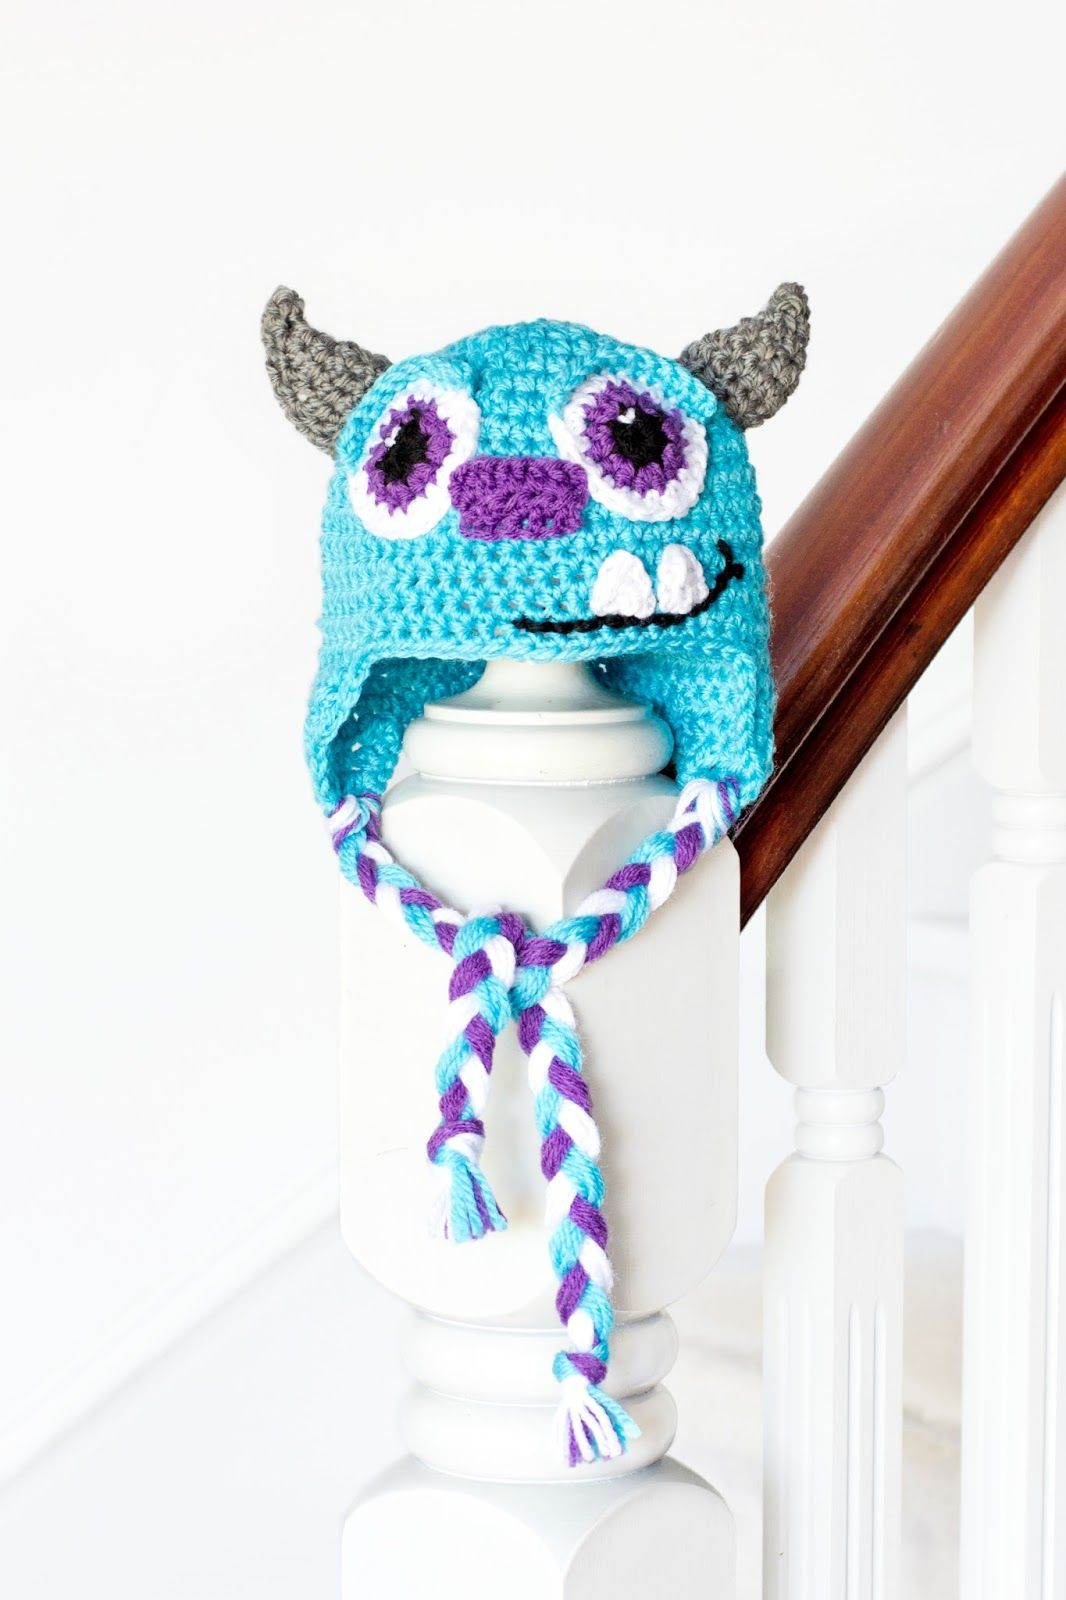 Monsters Inc. Sulley Inspired Baby Hat Crochet Pattern | Gorros ...